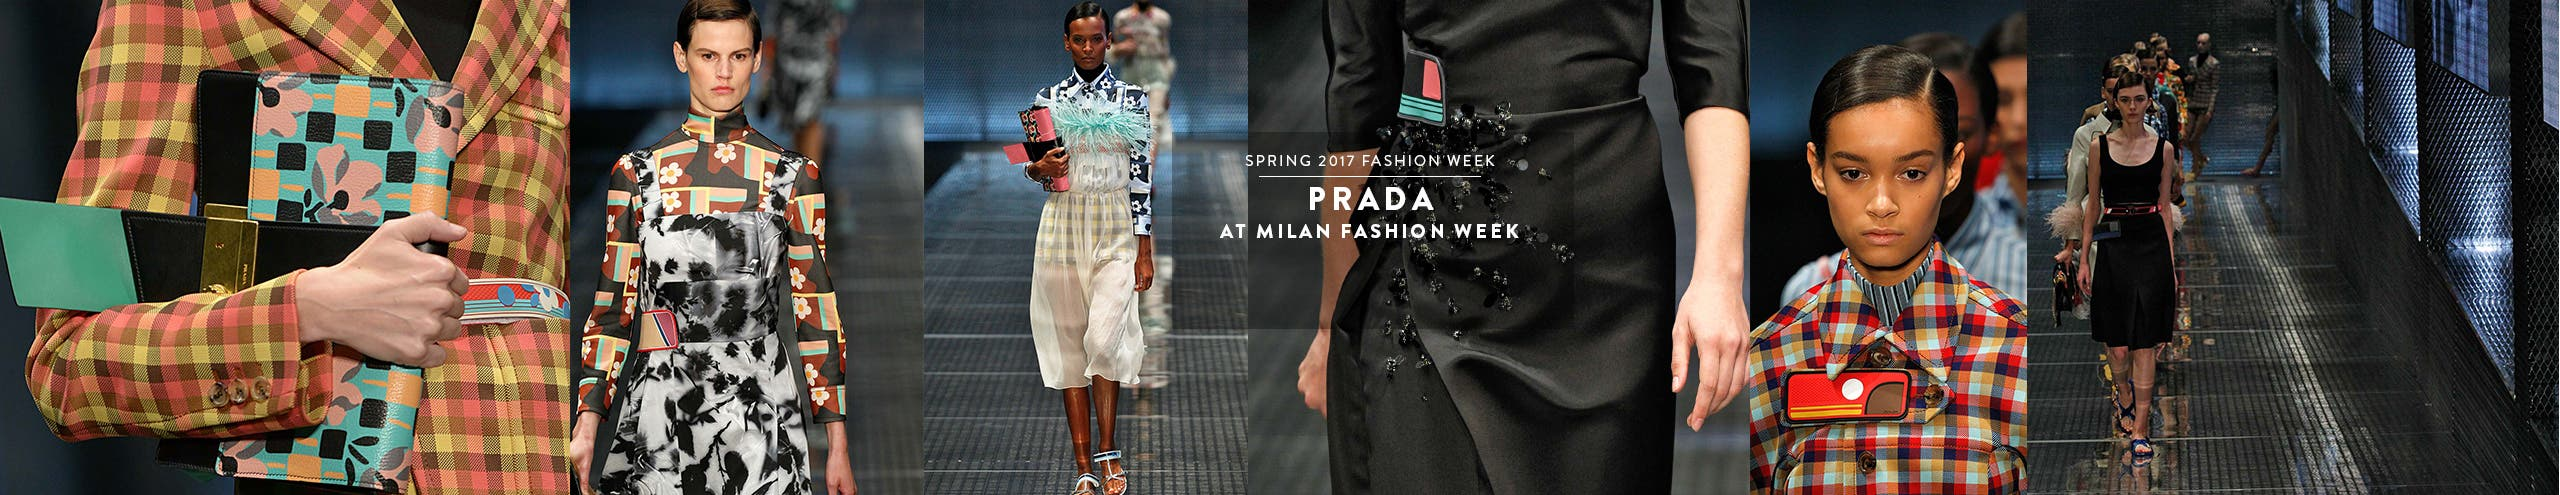 Prada at Milan Fashion Week, spring 2017.